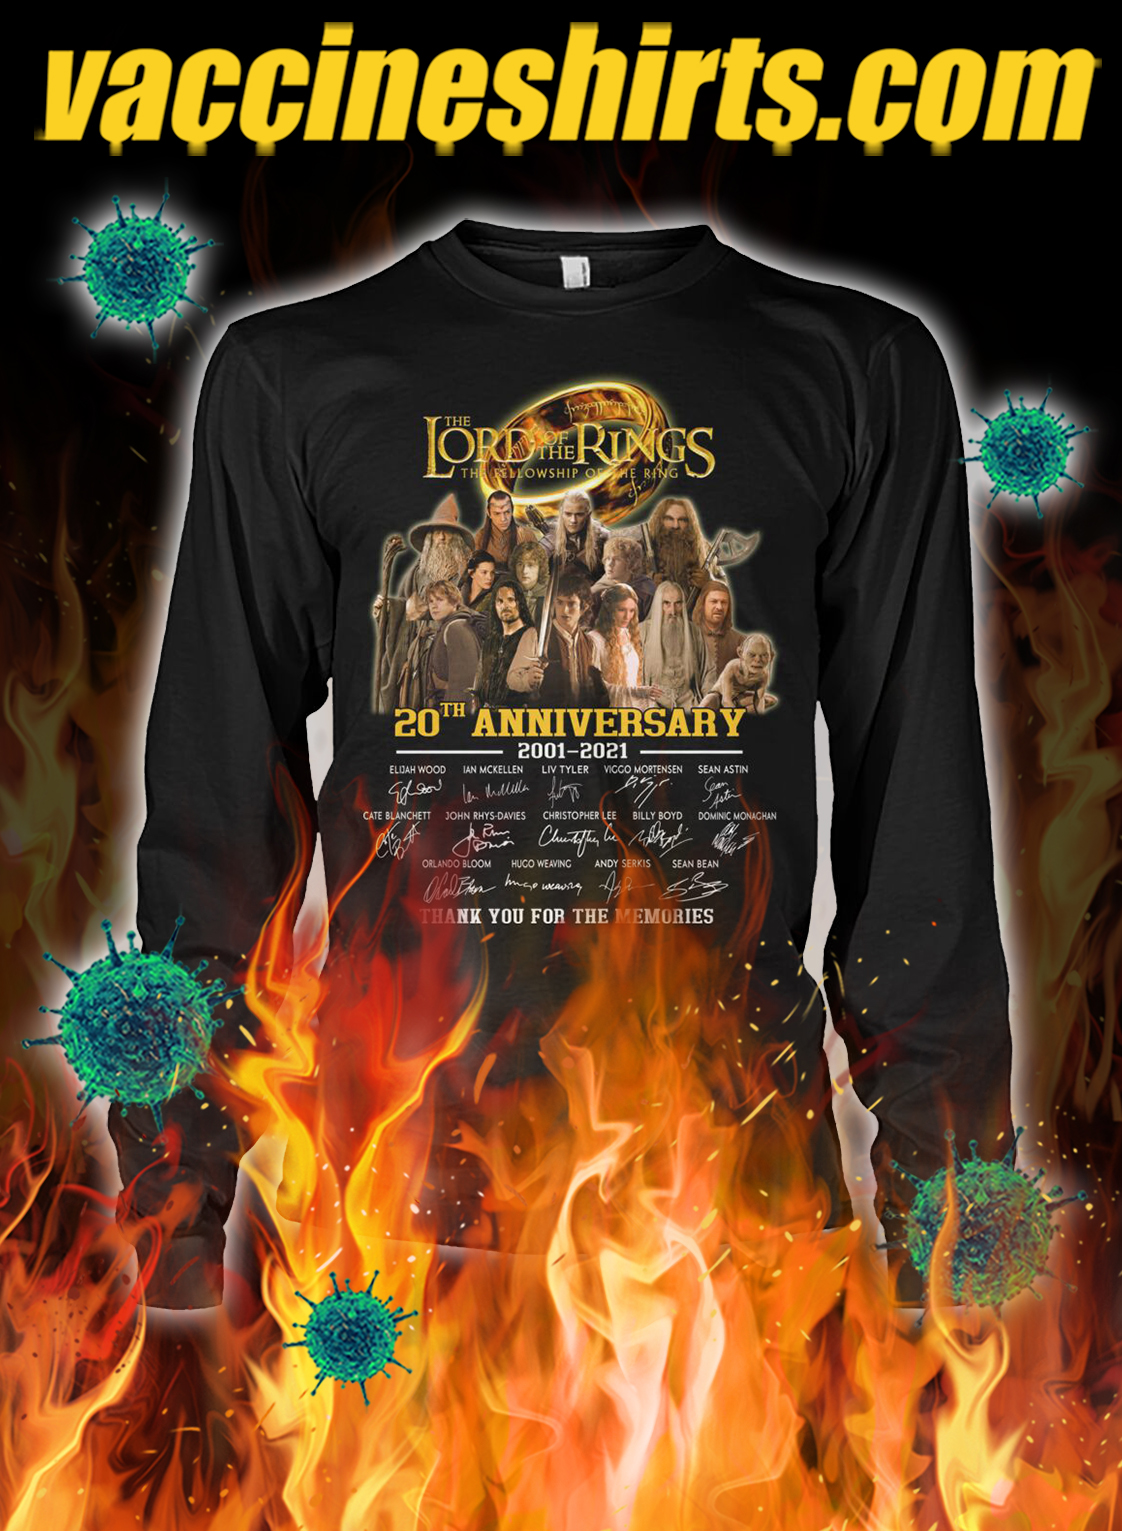 The lord of the rings 20th anniversary thank you for the memories longsleeve tee